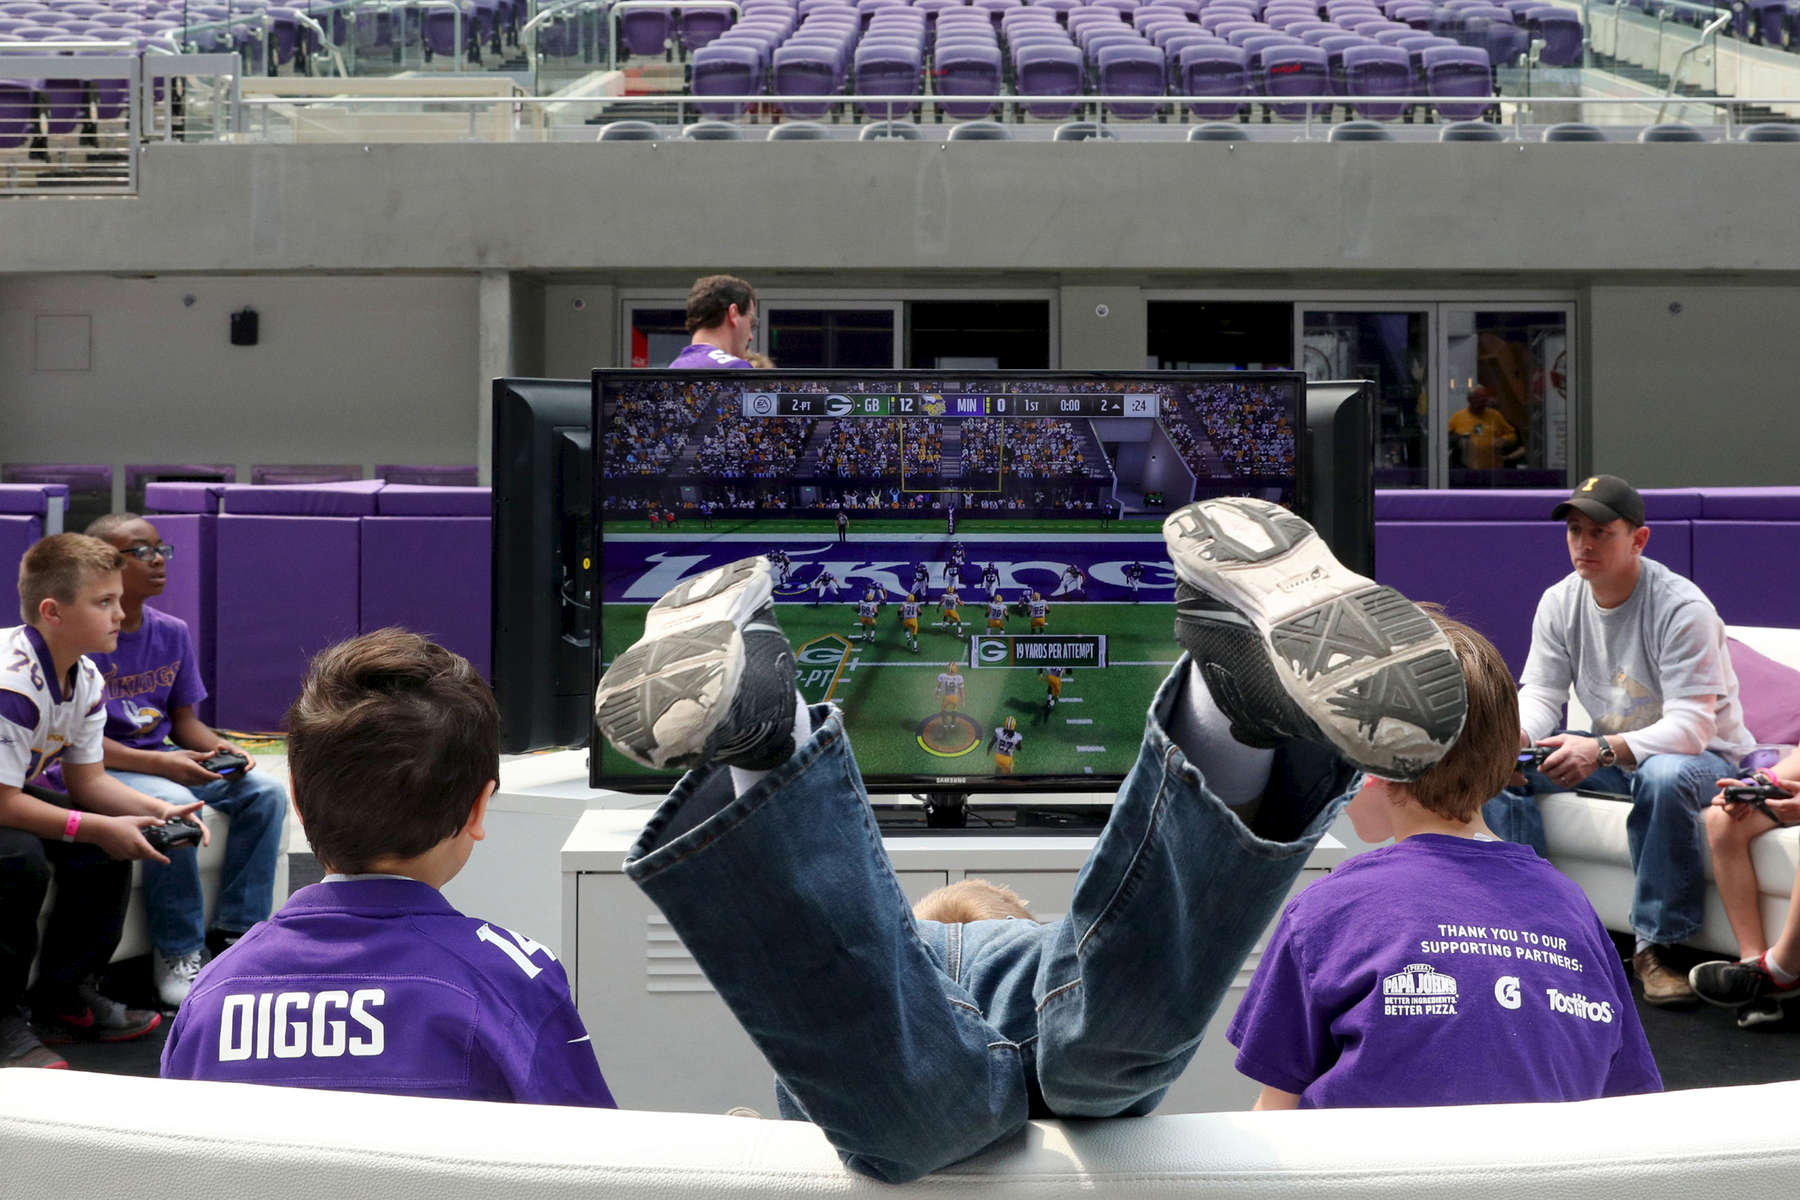 From left, Sean Mansur, 9, Gavin Curran 7, center, and Mason Ressie, 8, played a football video game during the Minnesota Vikings FanFest at U.S. Bank Stadium in Minneapolis.